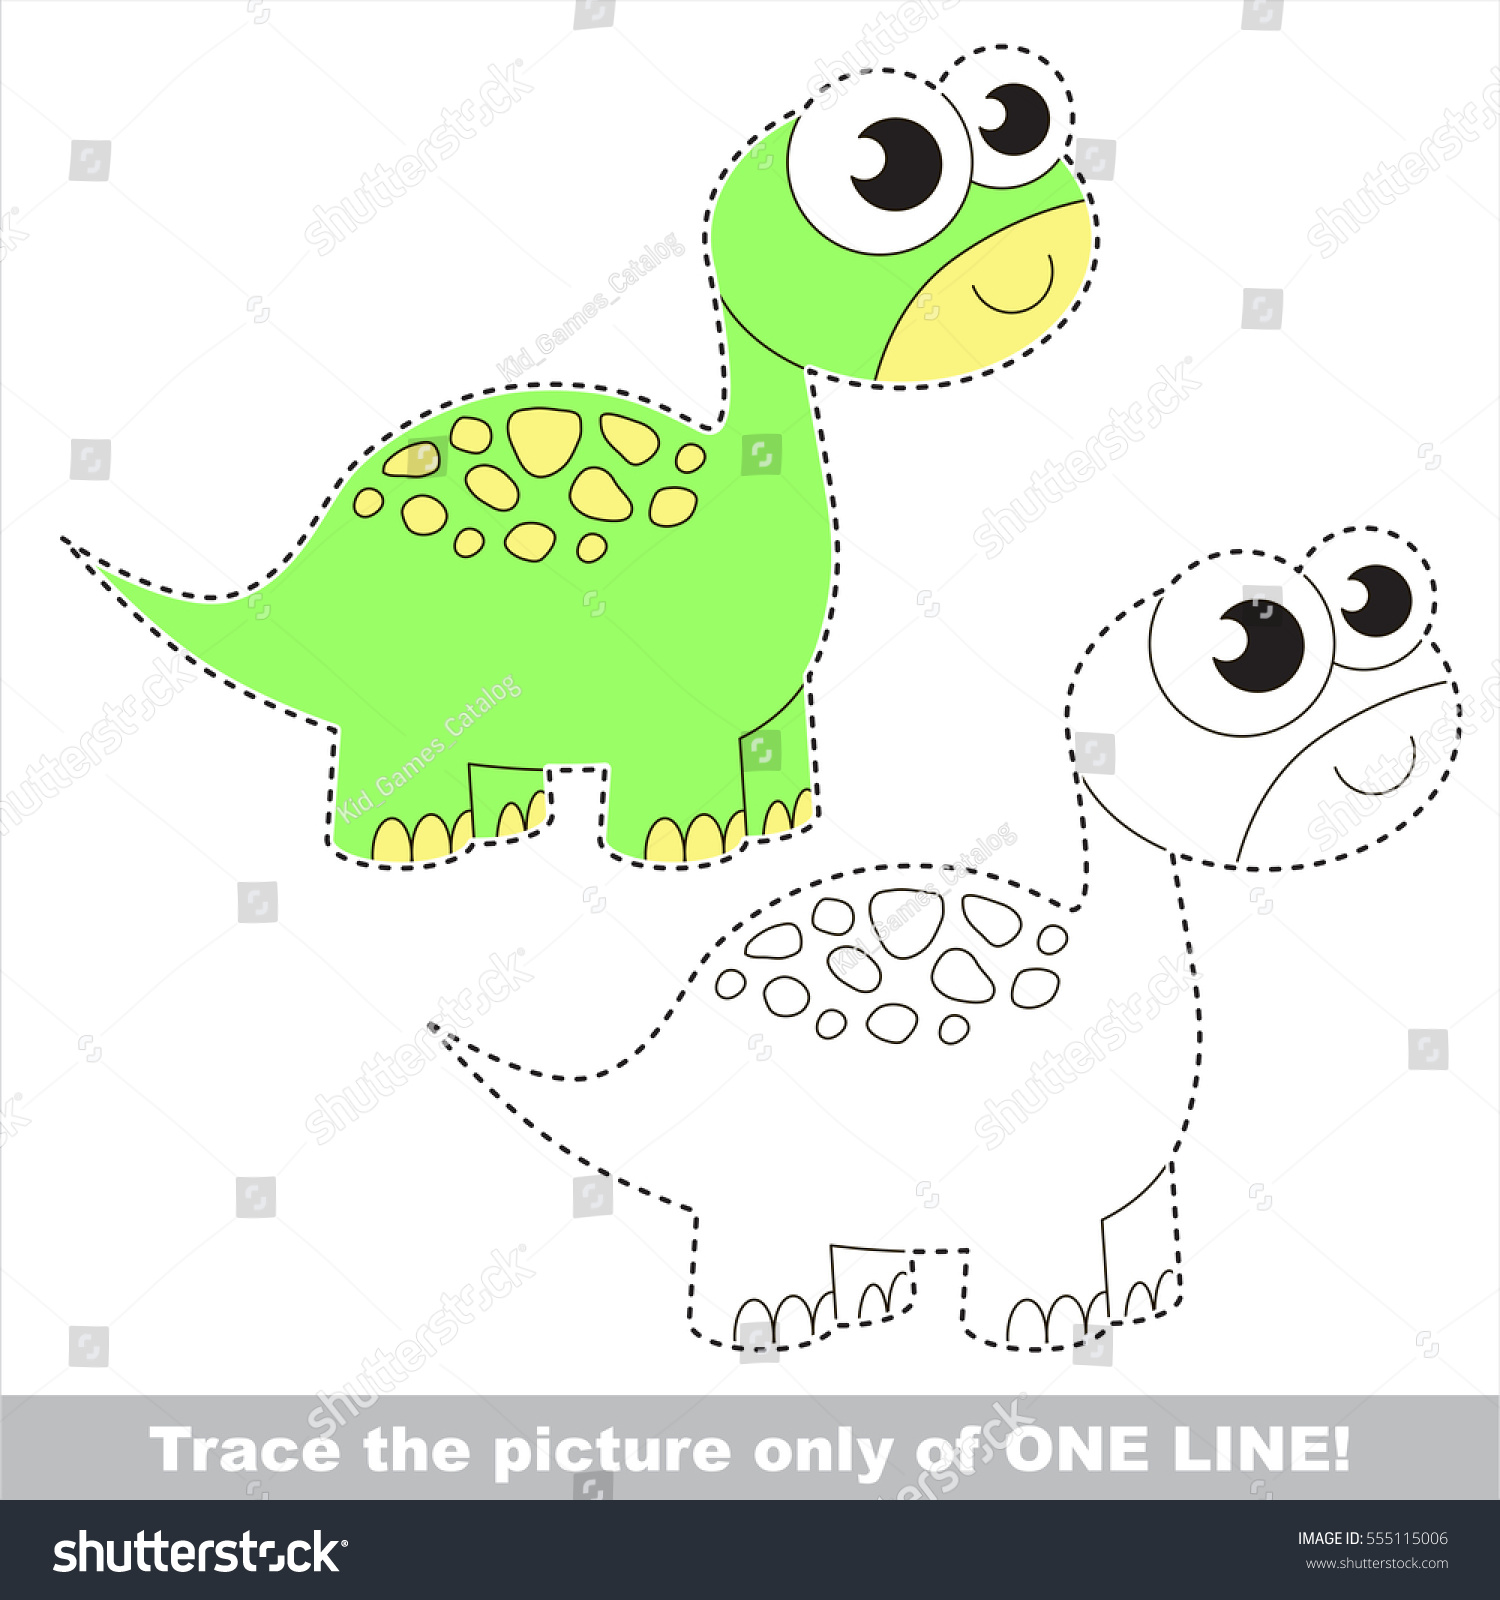 Brontosaurus Be Traced Only One Line Stock Vector (2018) 555115006 ...